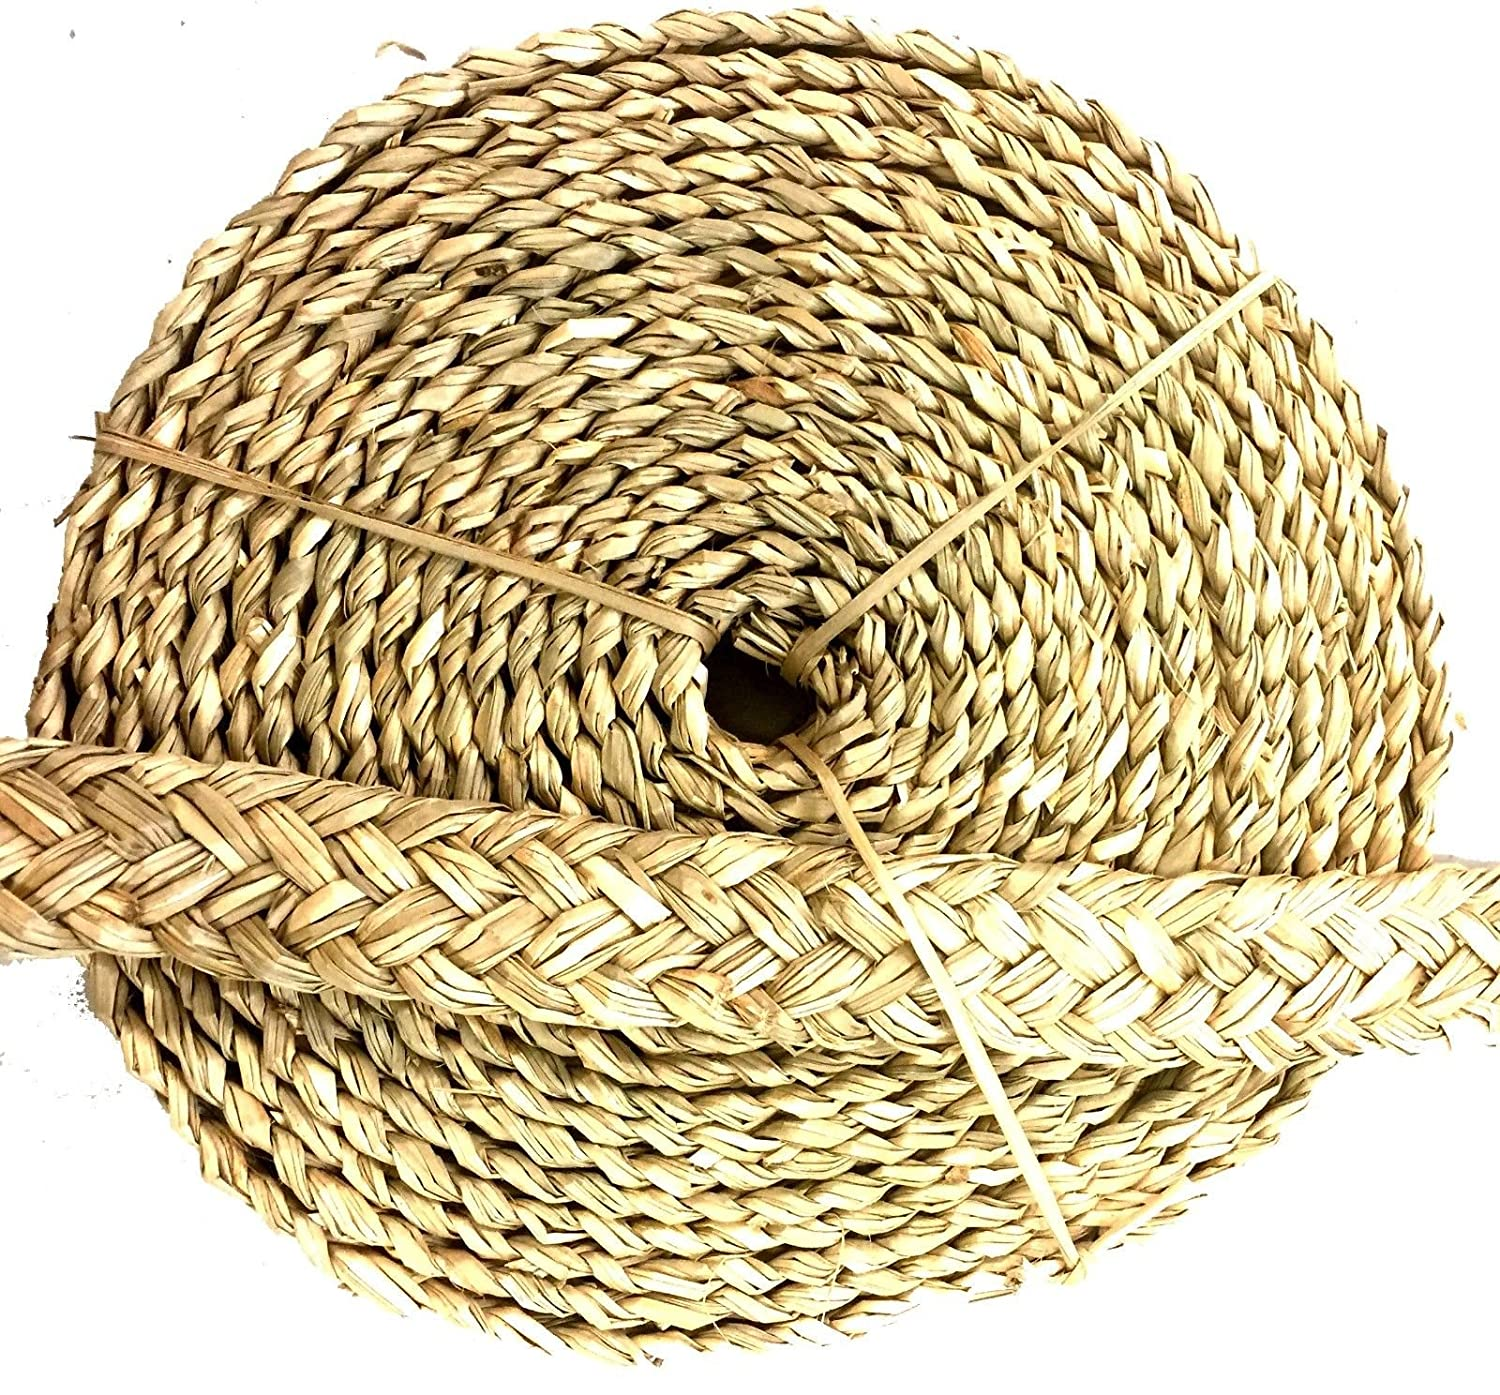 Bonka Bird Toys 20ft Natural Seagrass Braided Rope Foraging Bird Craft Toy Chew Strips Parreds Rats Guinea Pigs DIY Home Decor.